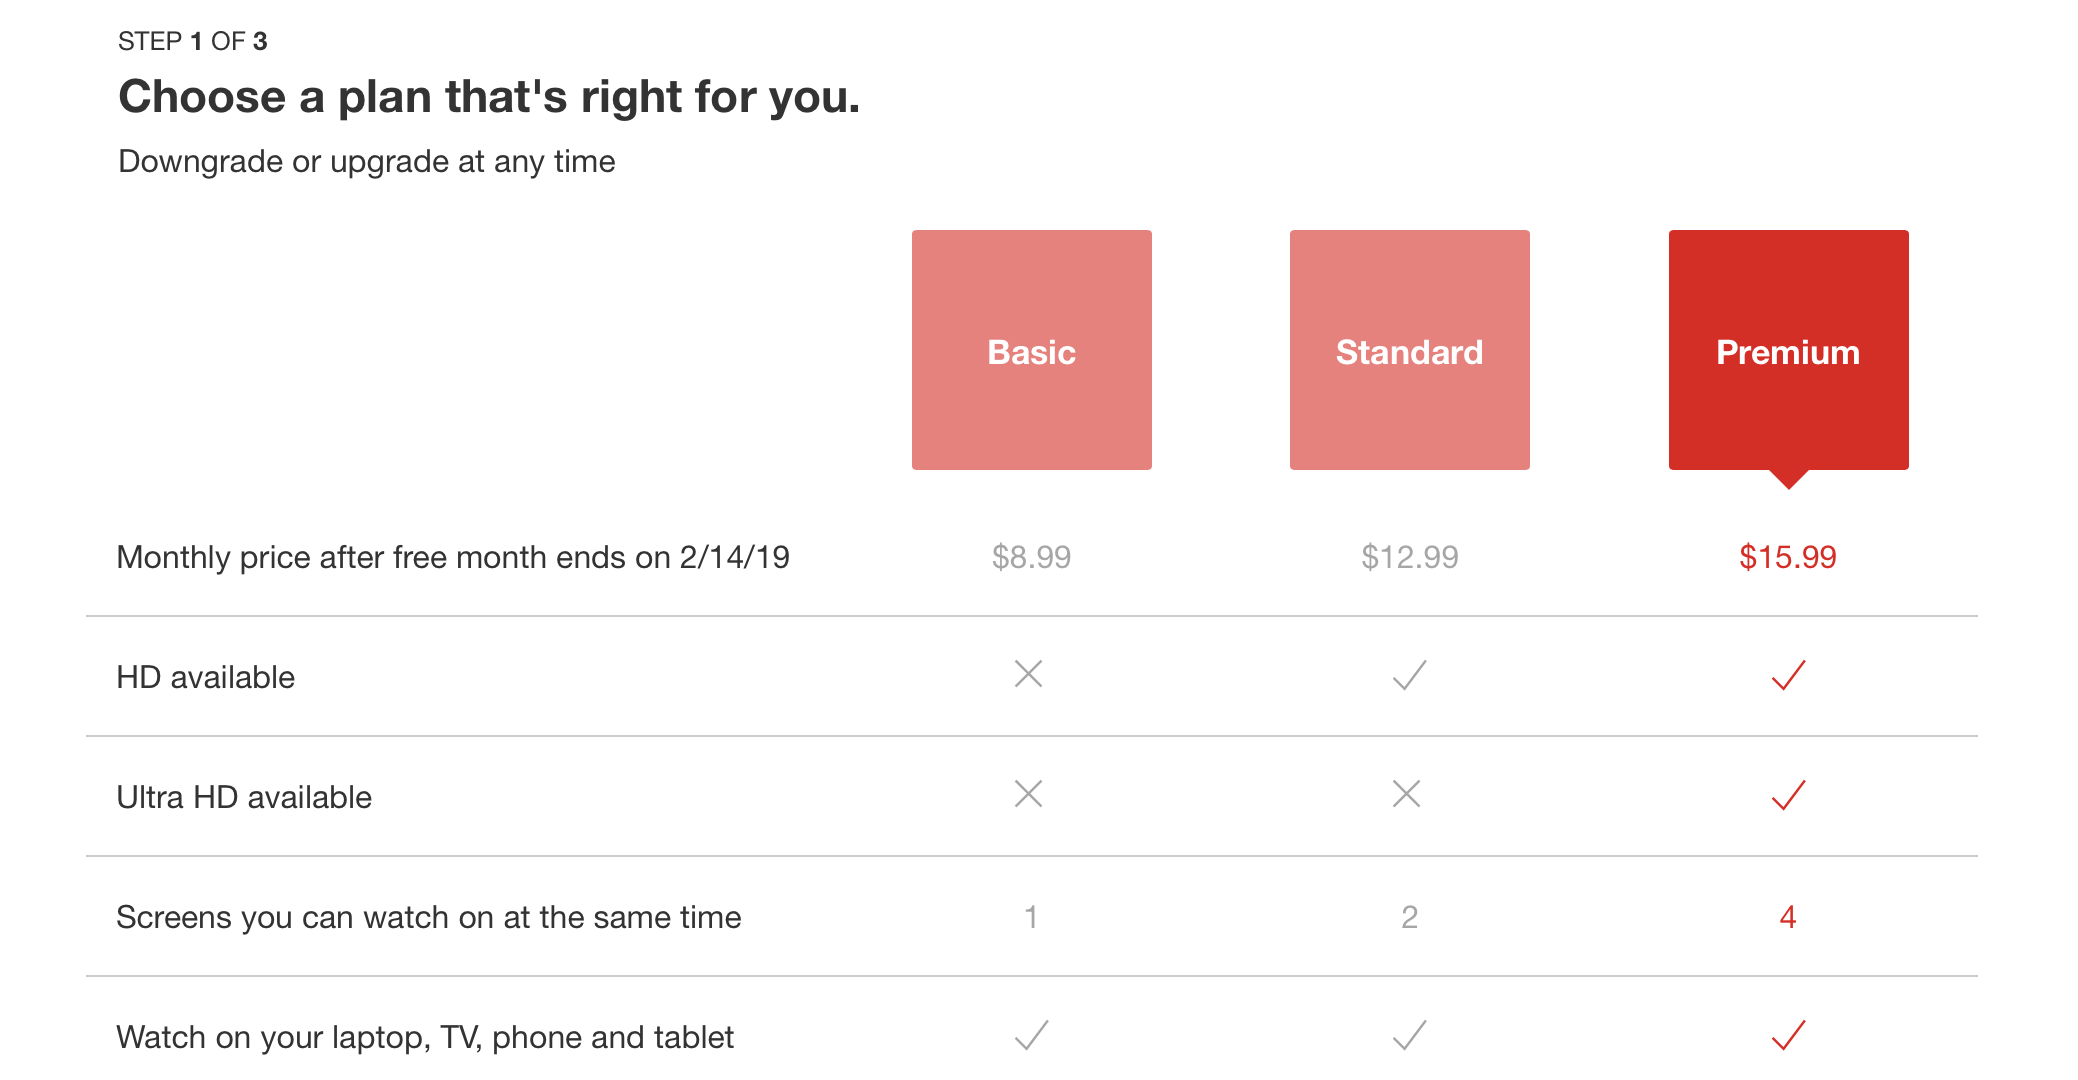 Netflix plans and pricing.